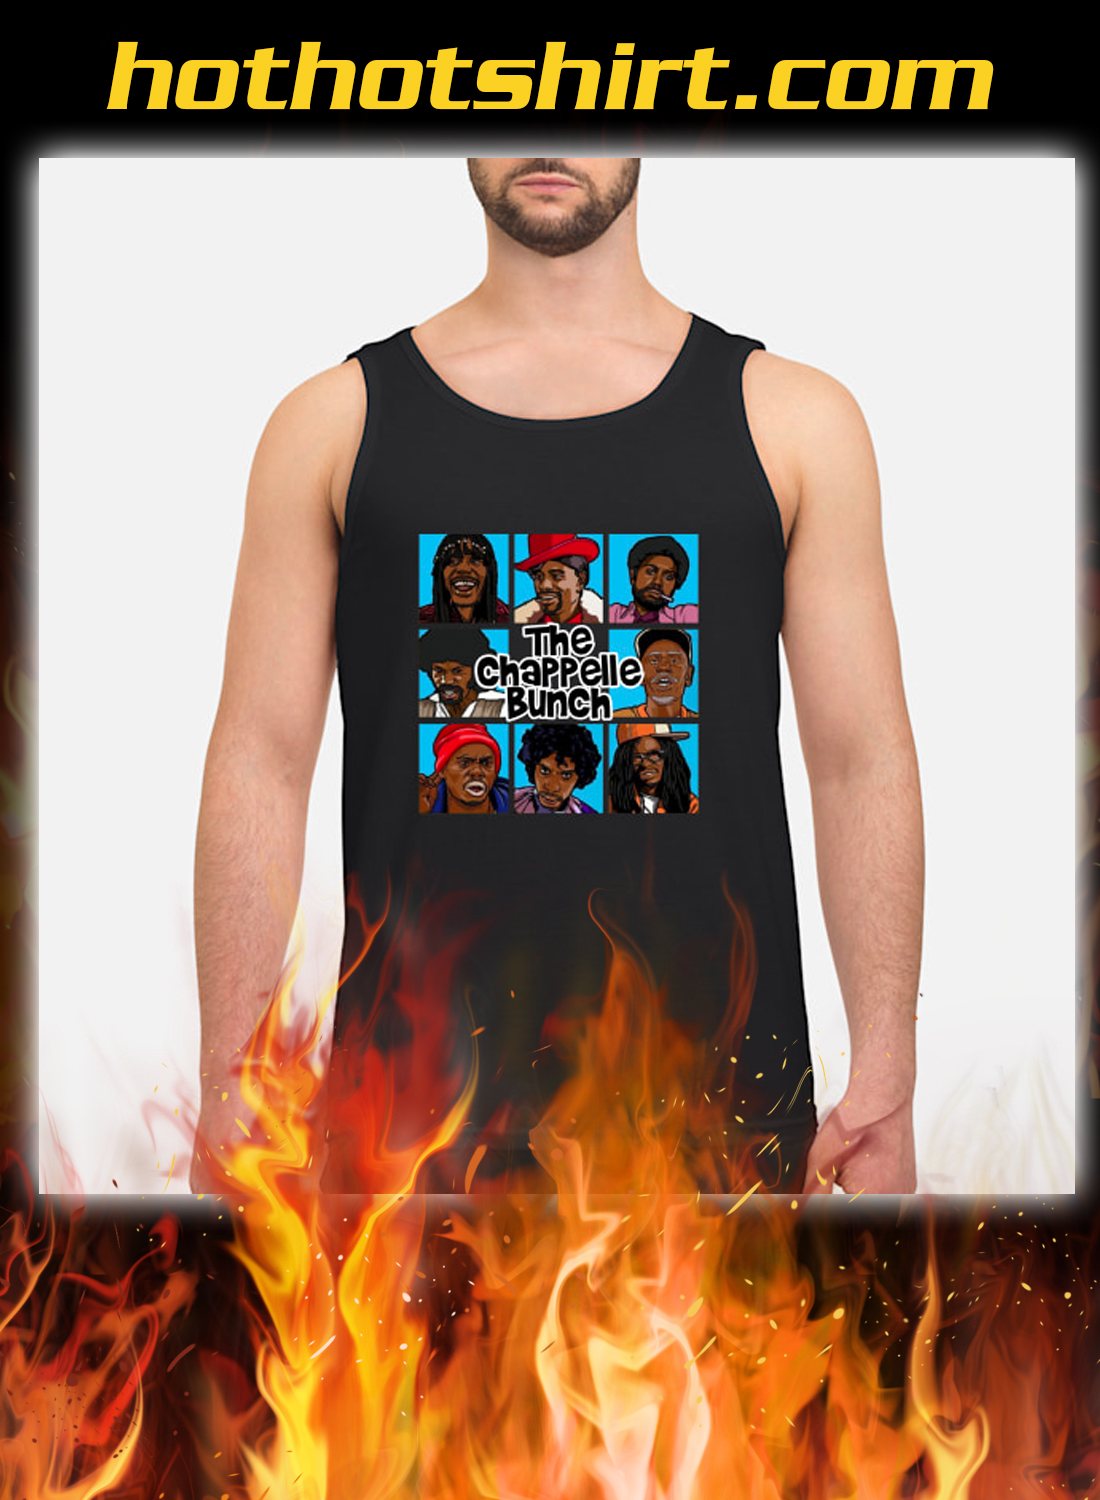 The Chappelle Bunch tank top